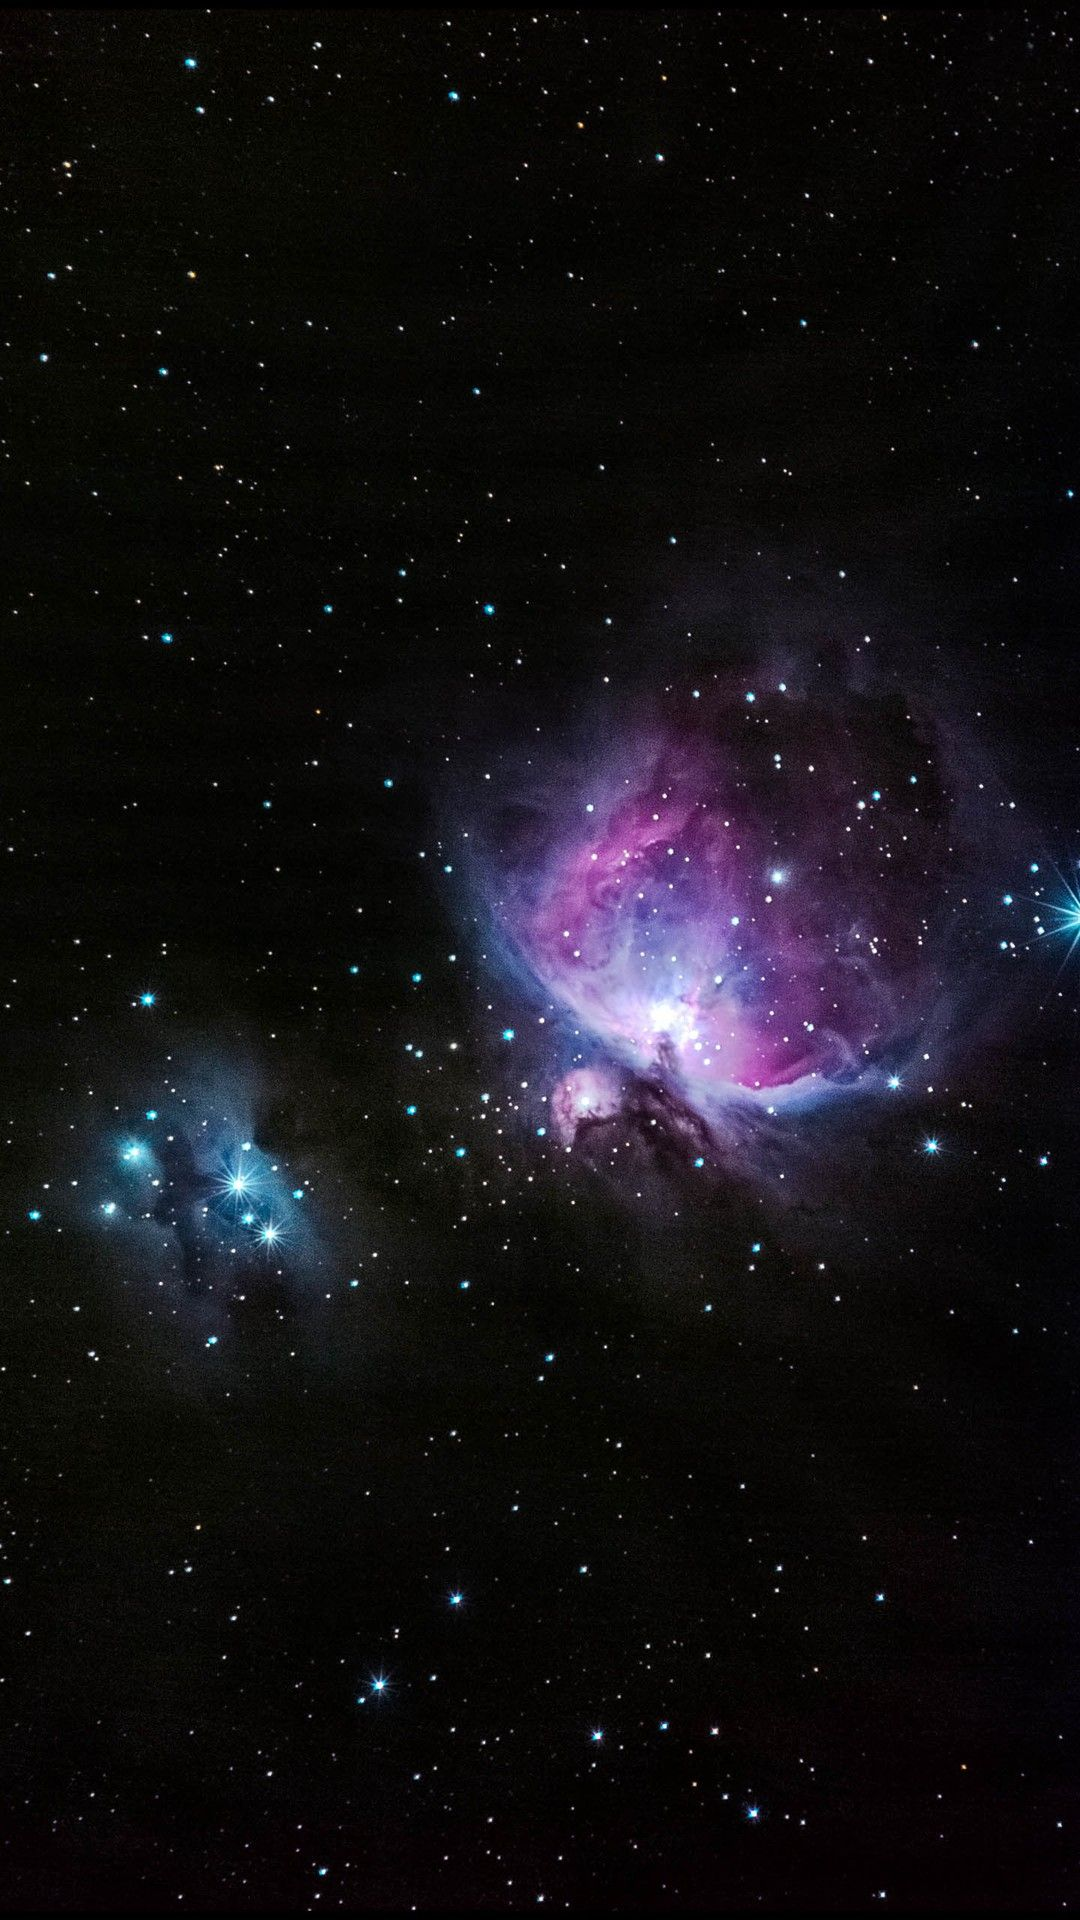 Blue And Pink Nebula Shiny In Outer Space | Cosmos ...